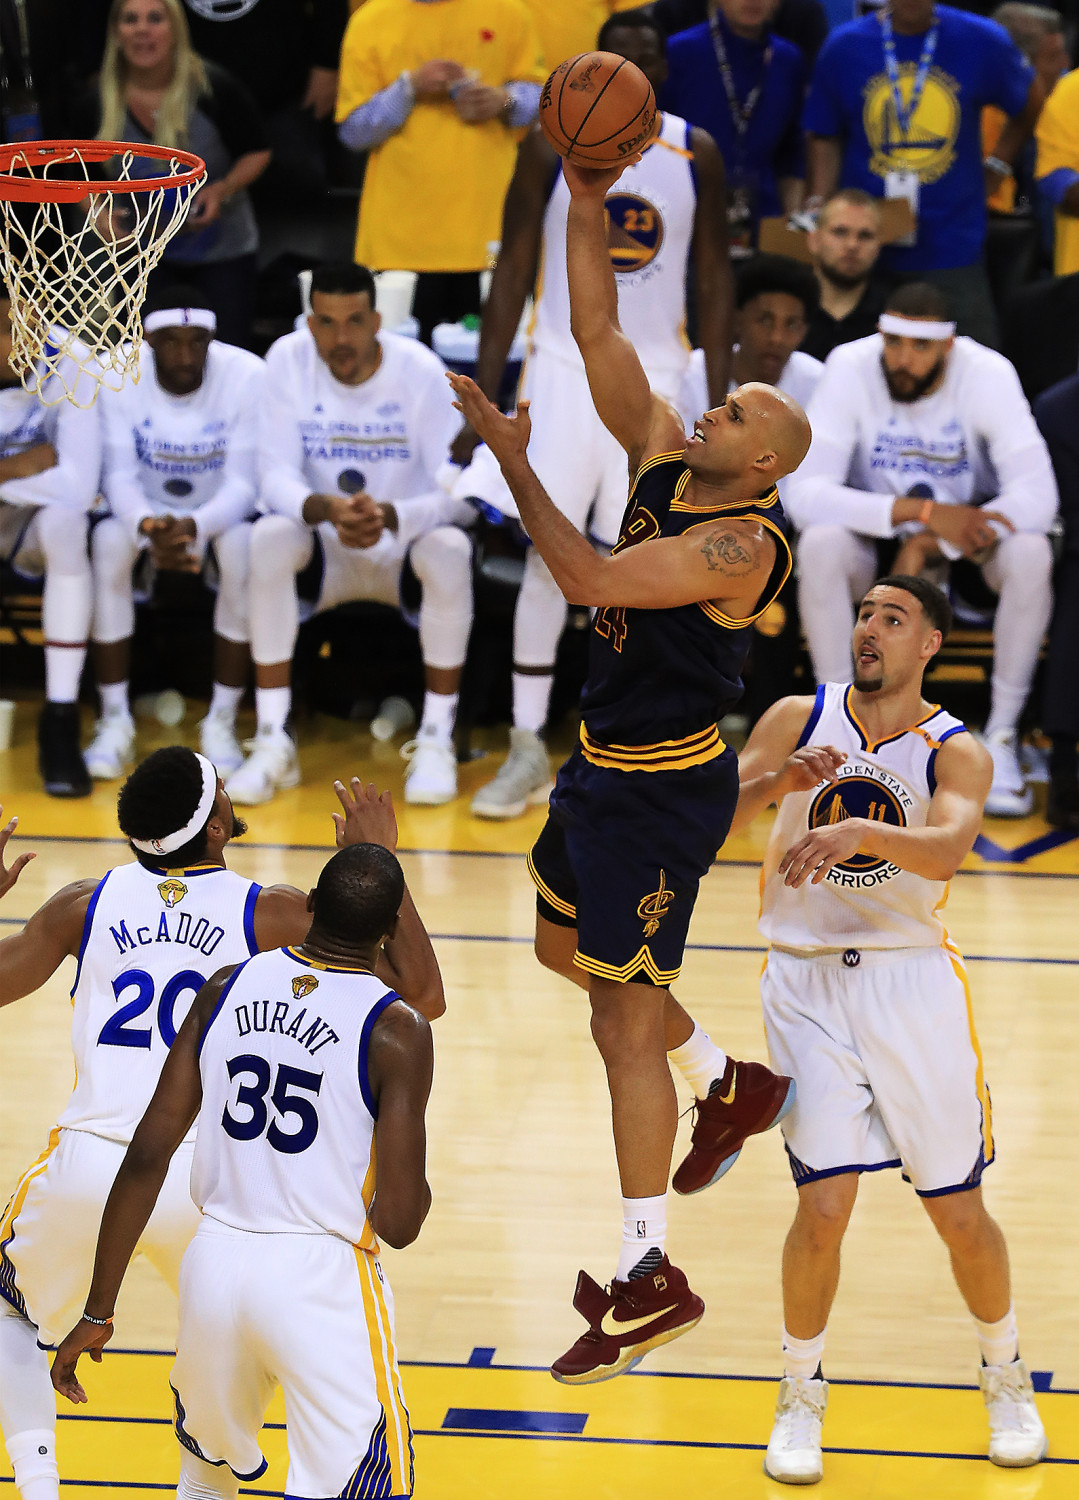 Richard Jefferson attempts to score against the Warriors